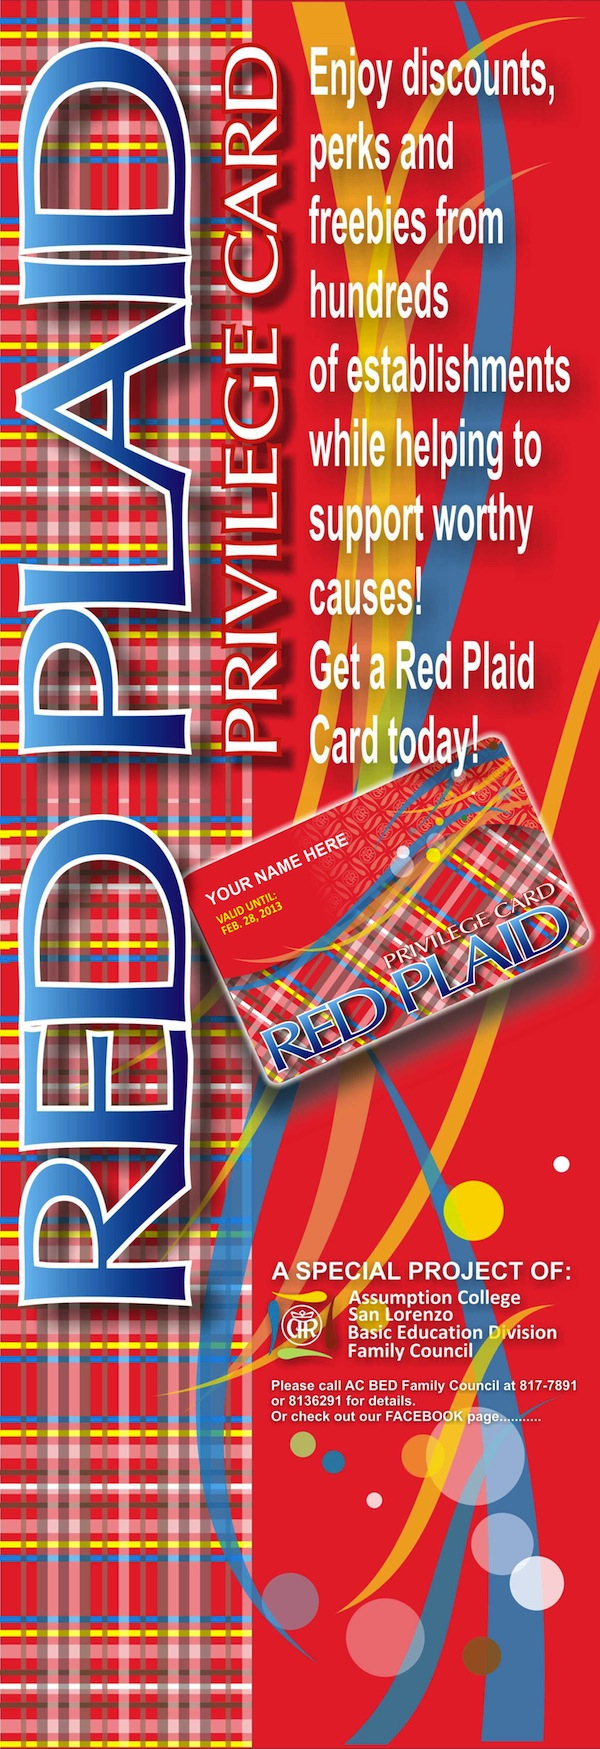 - standee-tarpaulin-design-for-red-aaa-plaid-card